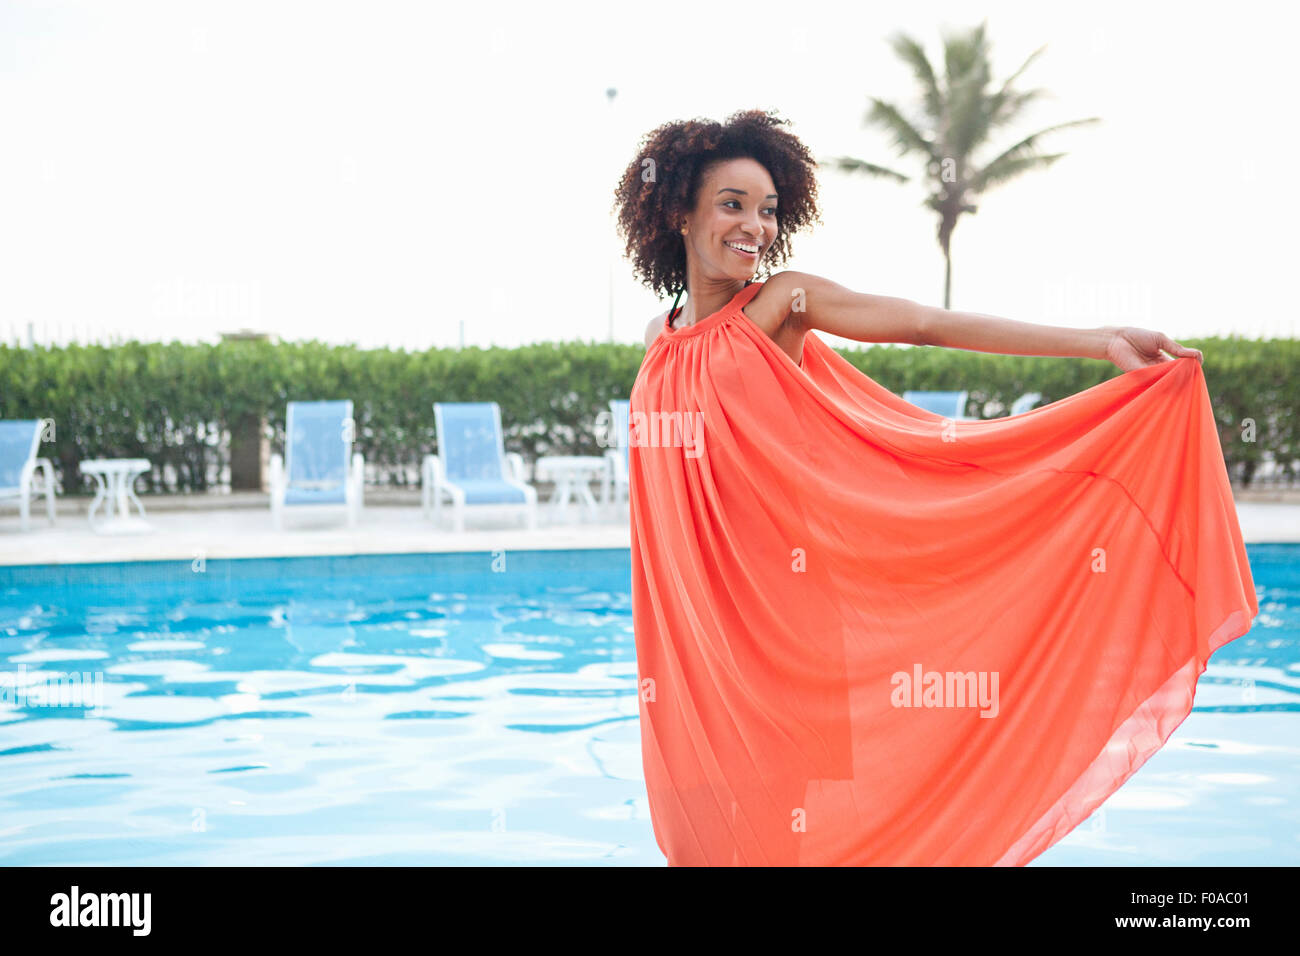 Portrait of young woman wearing orange dress at hotel poolside, Rio De Janeiro, Brazil - Stock Image